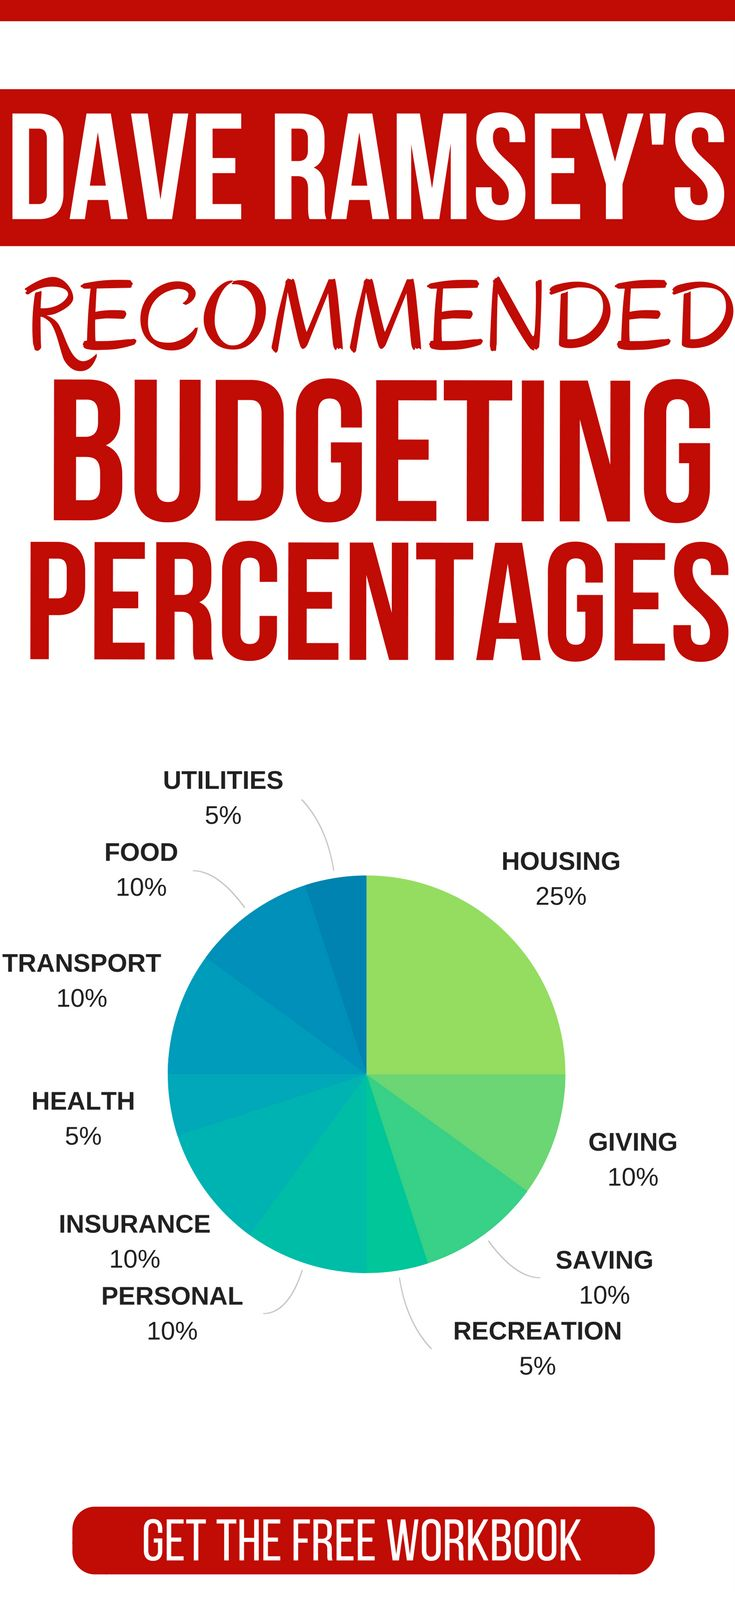 Breakdown of Dave Ramsey's Recommended Budgeting Percentages. CLICK THROUGH to learn more. dave ramsey budgeting | dave ramsey budgeting worksheets | budgeting for beginners | budgeting tips | beginner budgeting tips | how to budget your money for beginners #budget #organization #frugal